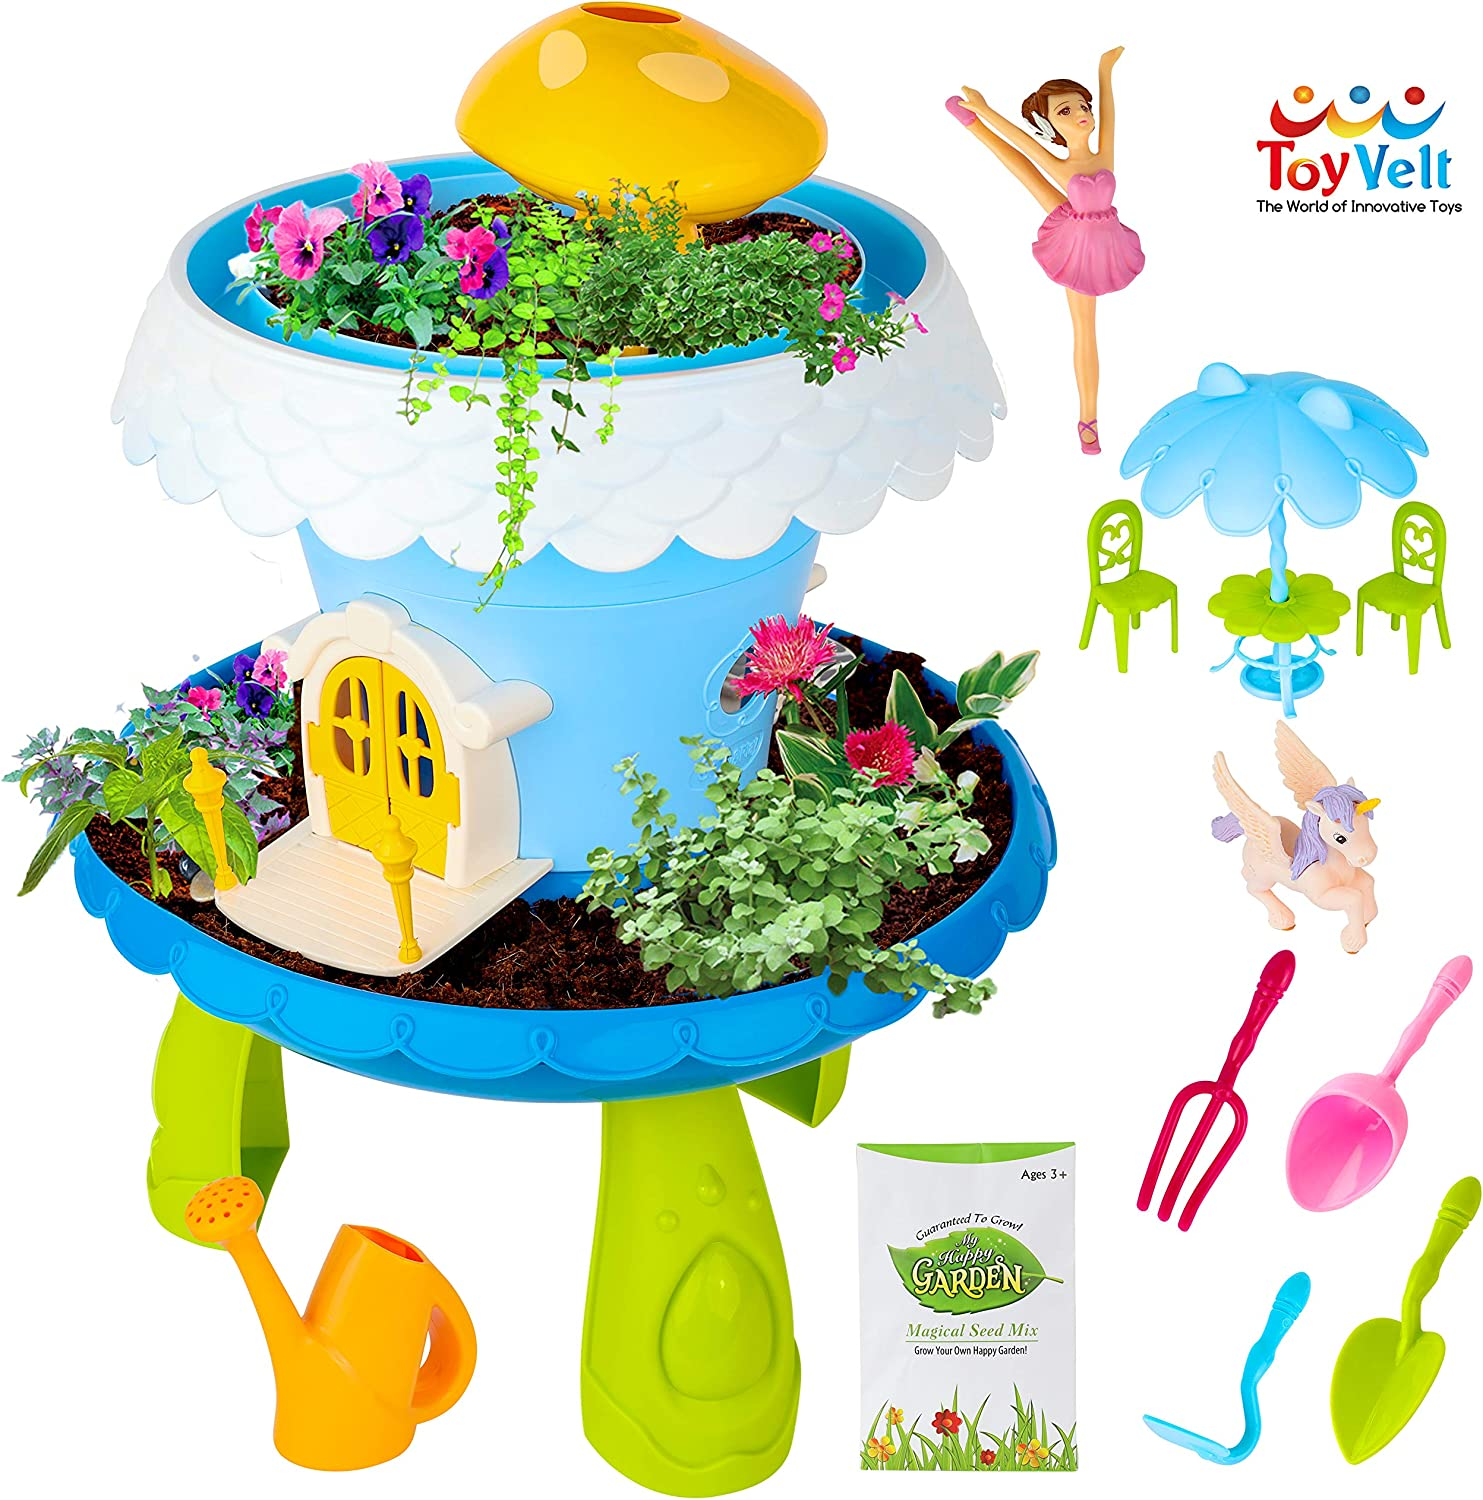 ToyVelt Fairy Garden Kit for Kids - Grow Your Own Fairy House with Soil and Seeds Plus 15 Exciting Accerioeroies with Music and Lights - The Best Fairy Garden Kit for Boys and Girls Ages 4 and up